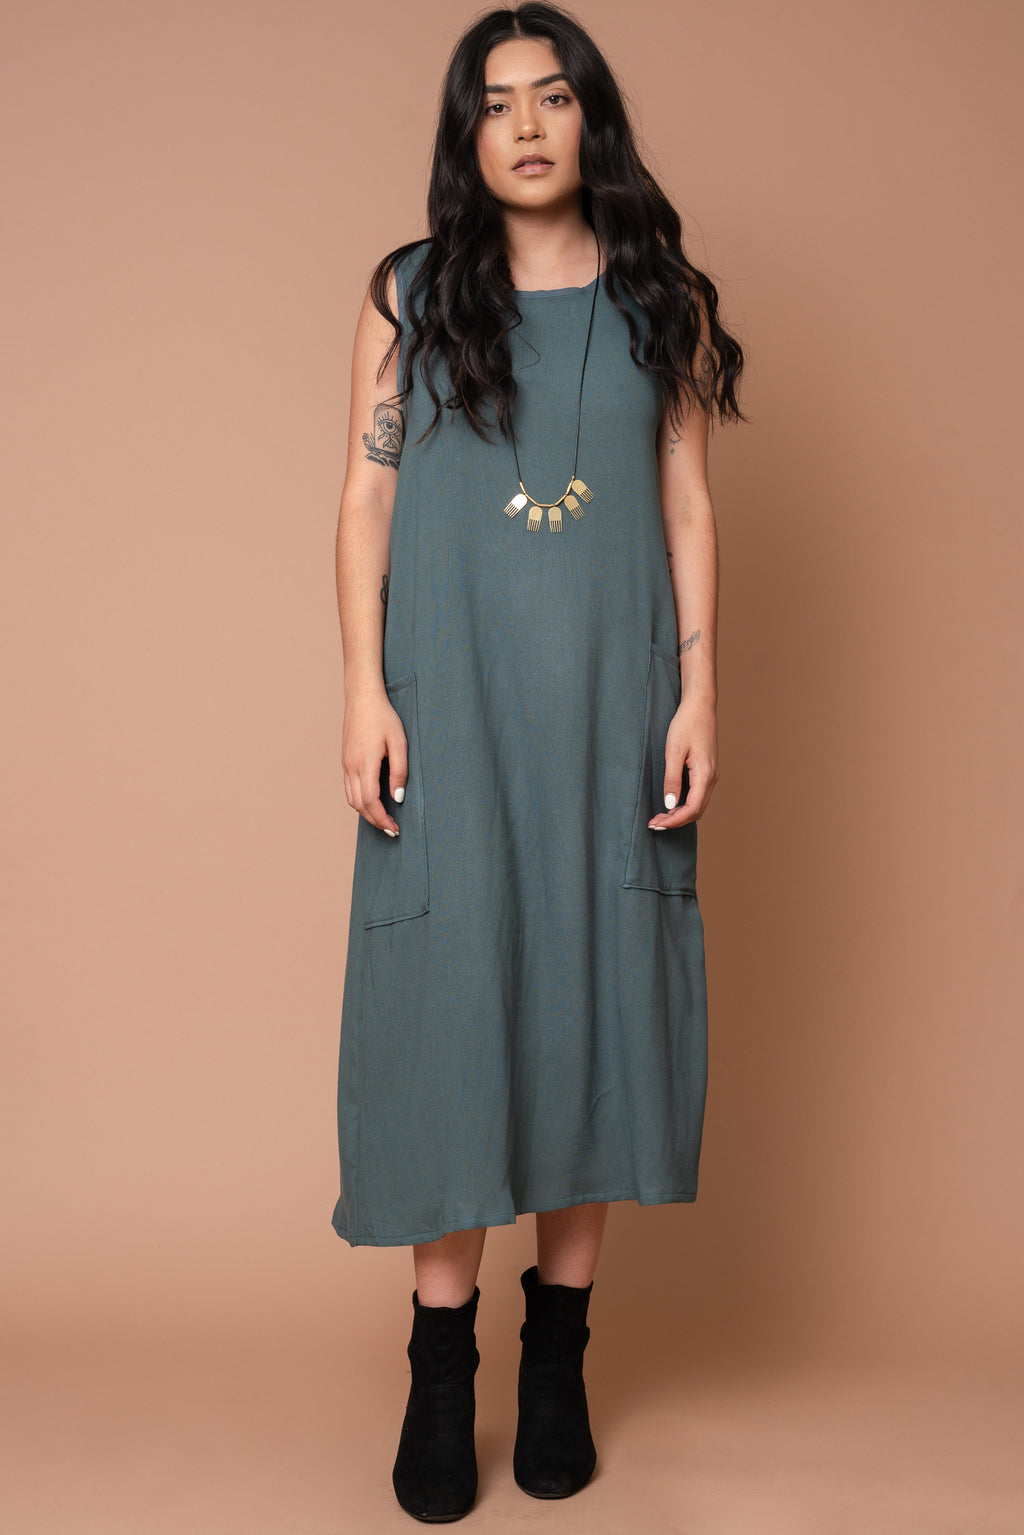 Teal Pocket Shift Dress